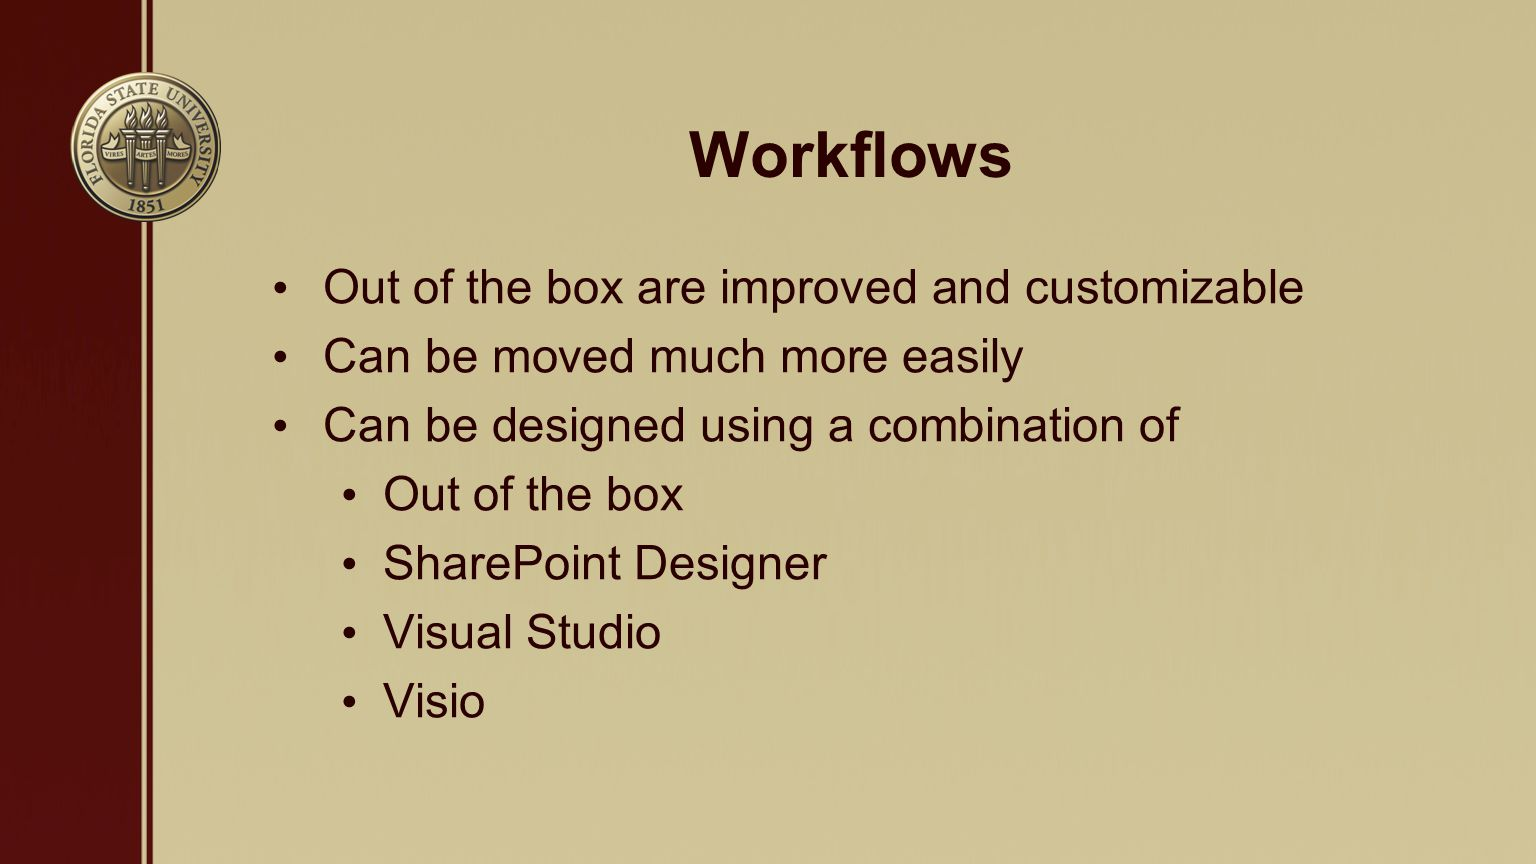 Workflows Out of the box are improved and customizable Can be moved much more easily Can be designed using a combination of Out of the box SharePoint Designer Visual Studio Visio